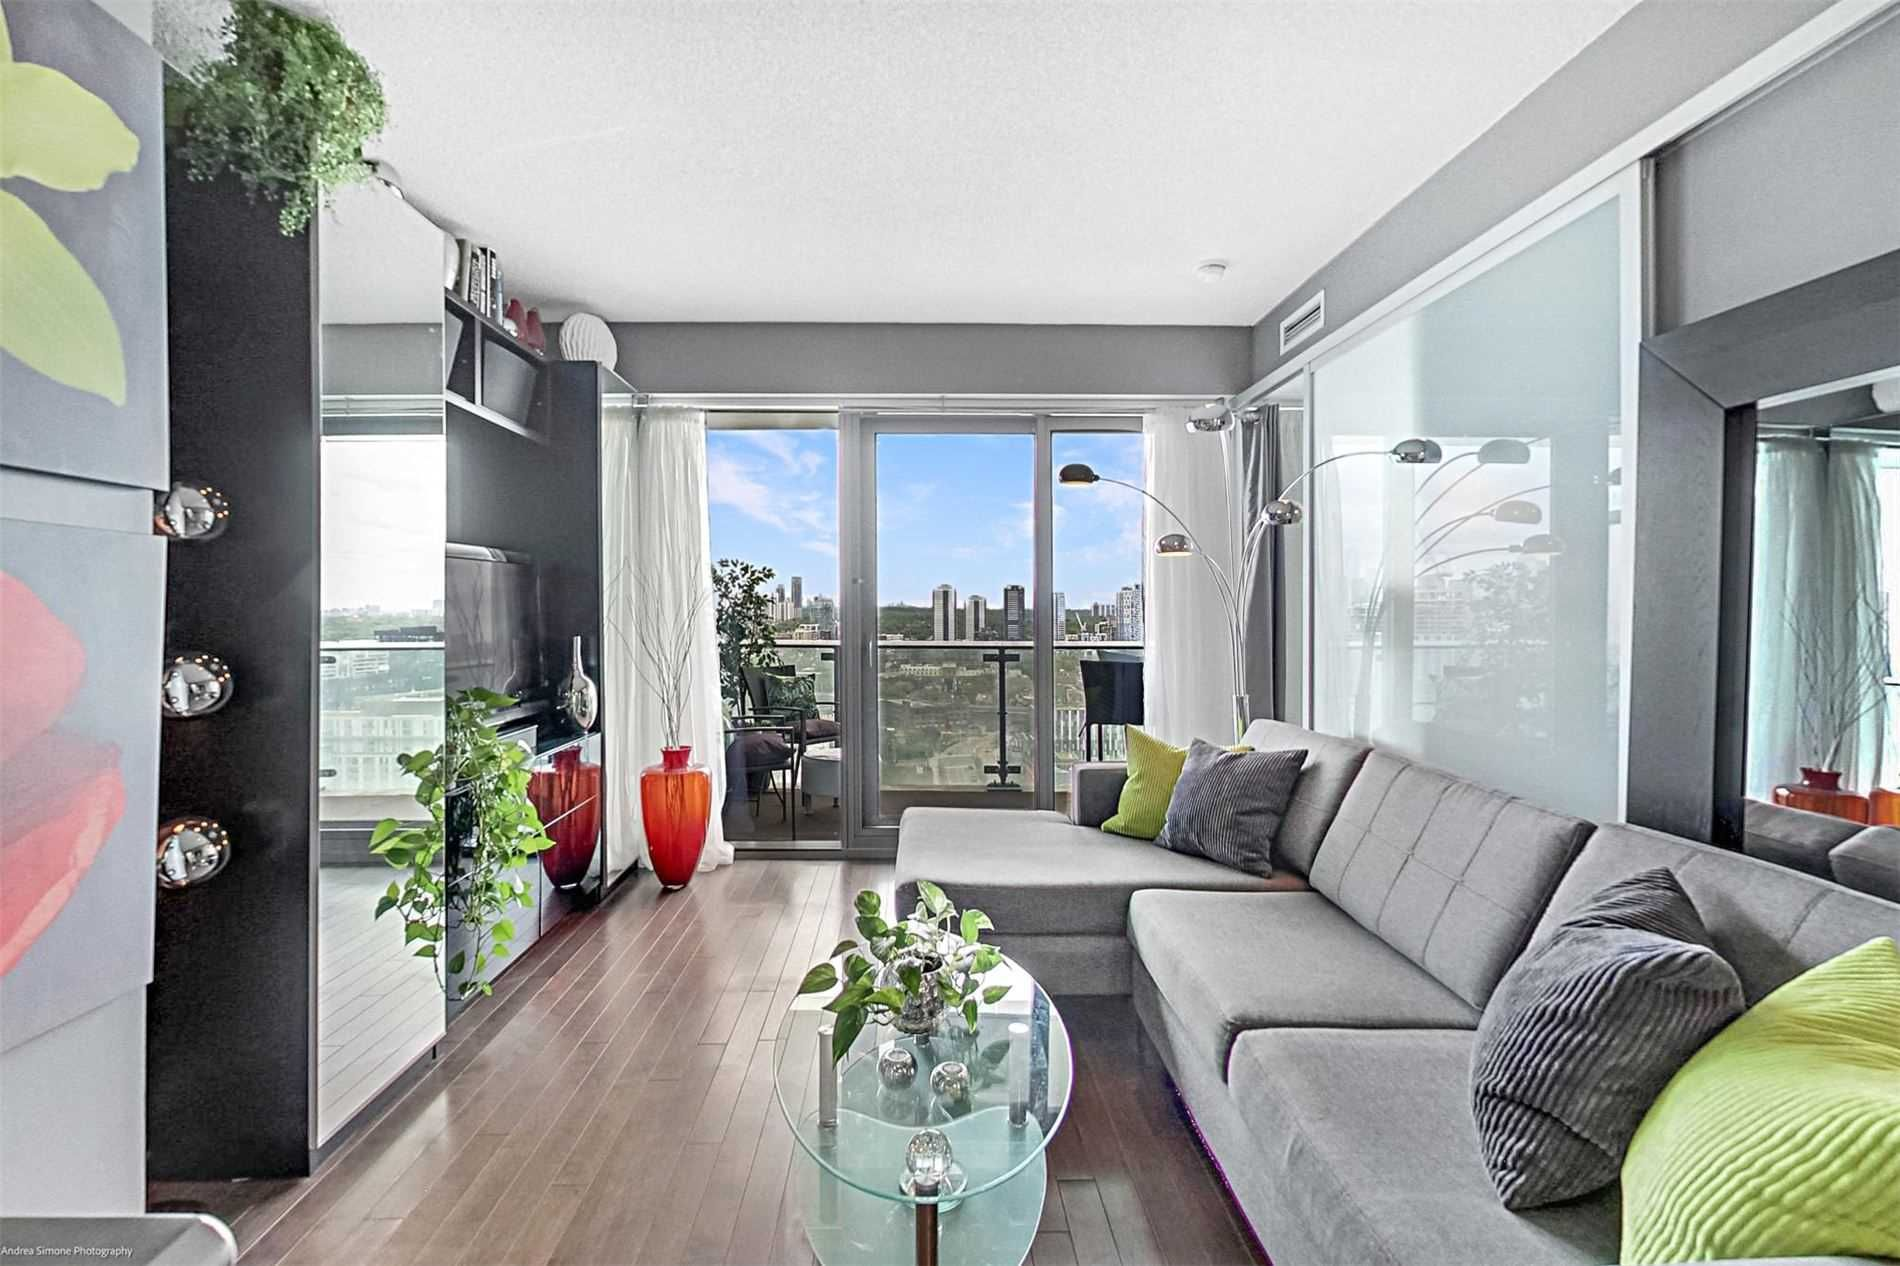 390 Cherry St, unit 2204 for sale in Toronto - image #2